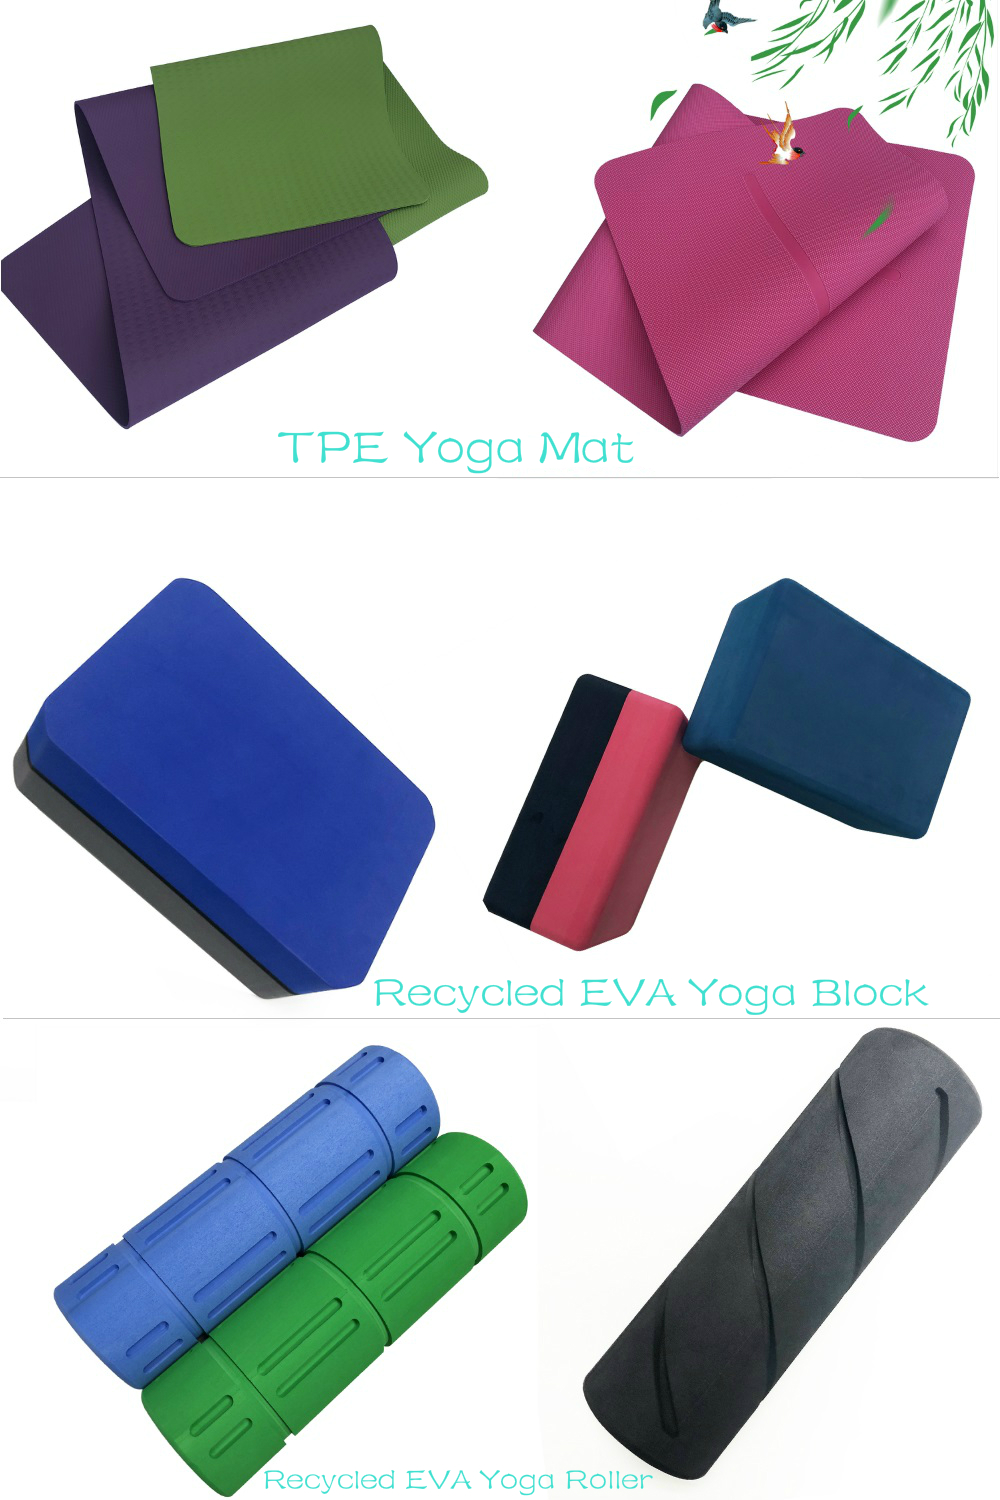 Non-slip Eco Friendly 4mm 6mm 8mm Thickness Durability Odorless Luxurious Pilates Yoga Mat Tpe For Home And Travel